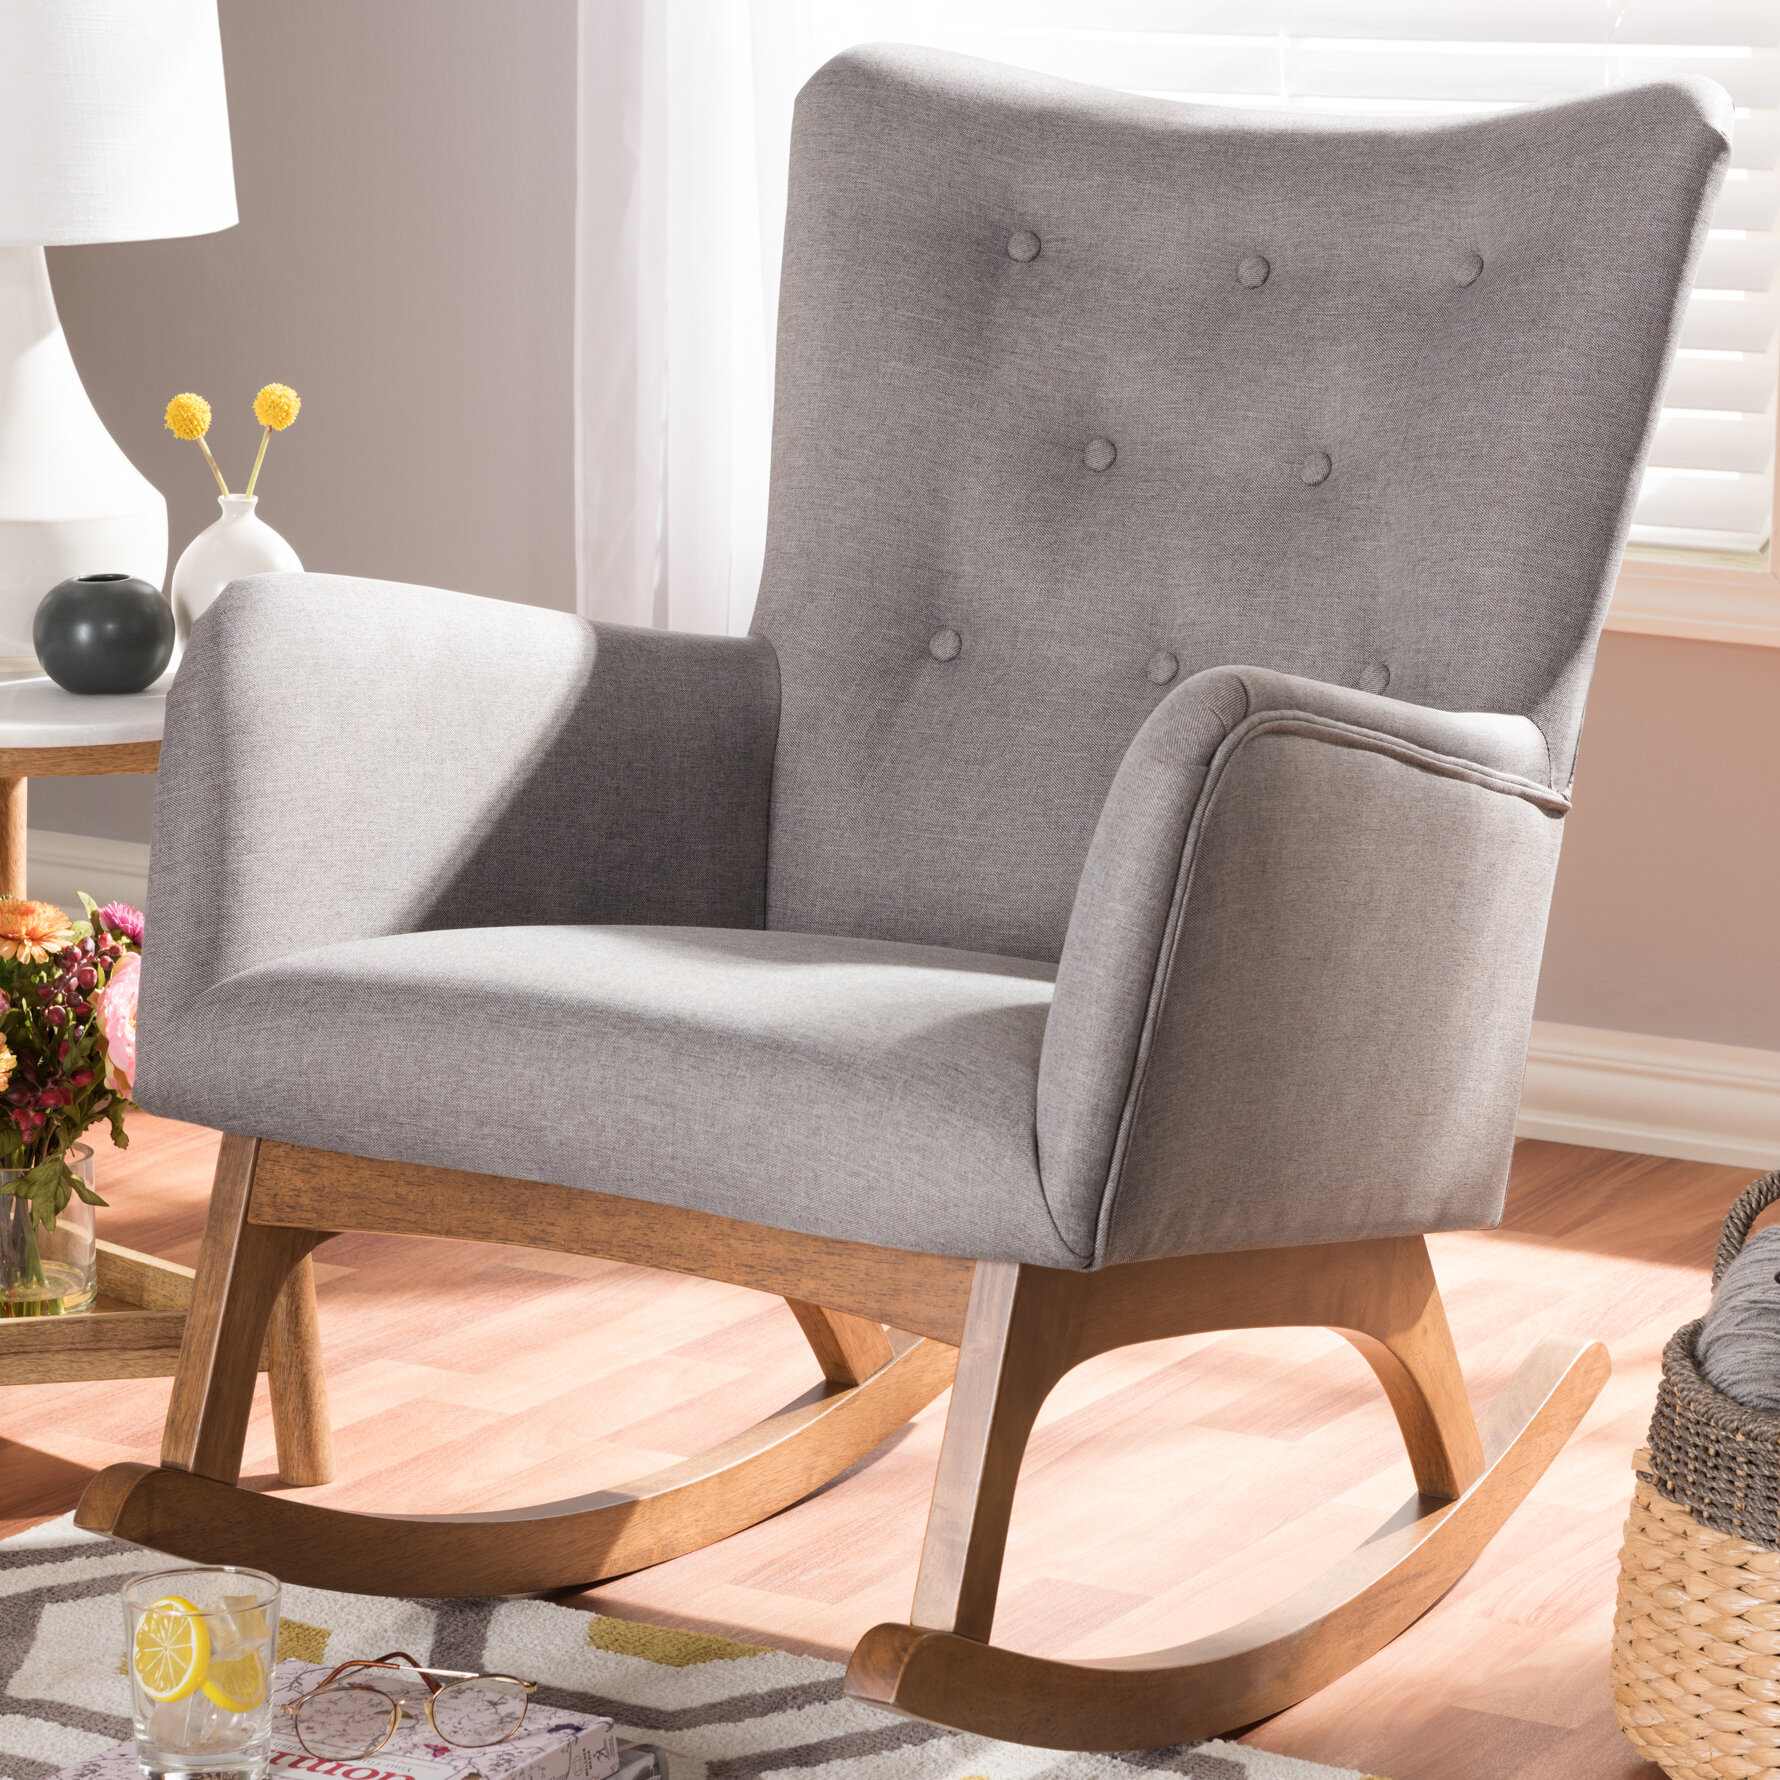 reputable site 18472 4c663 Centreville Rocking Chair